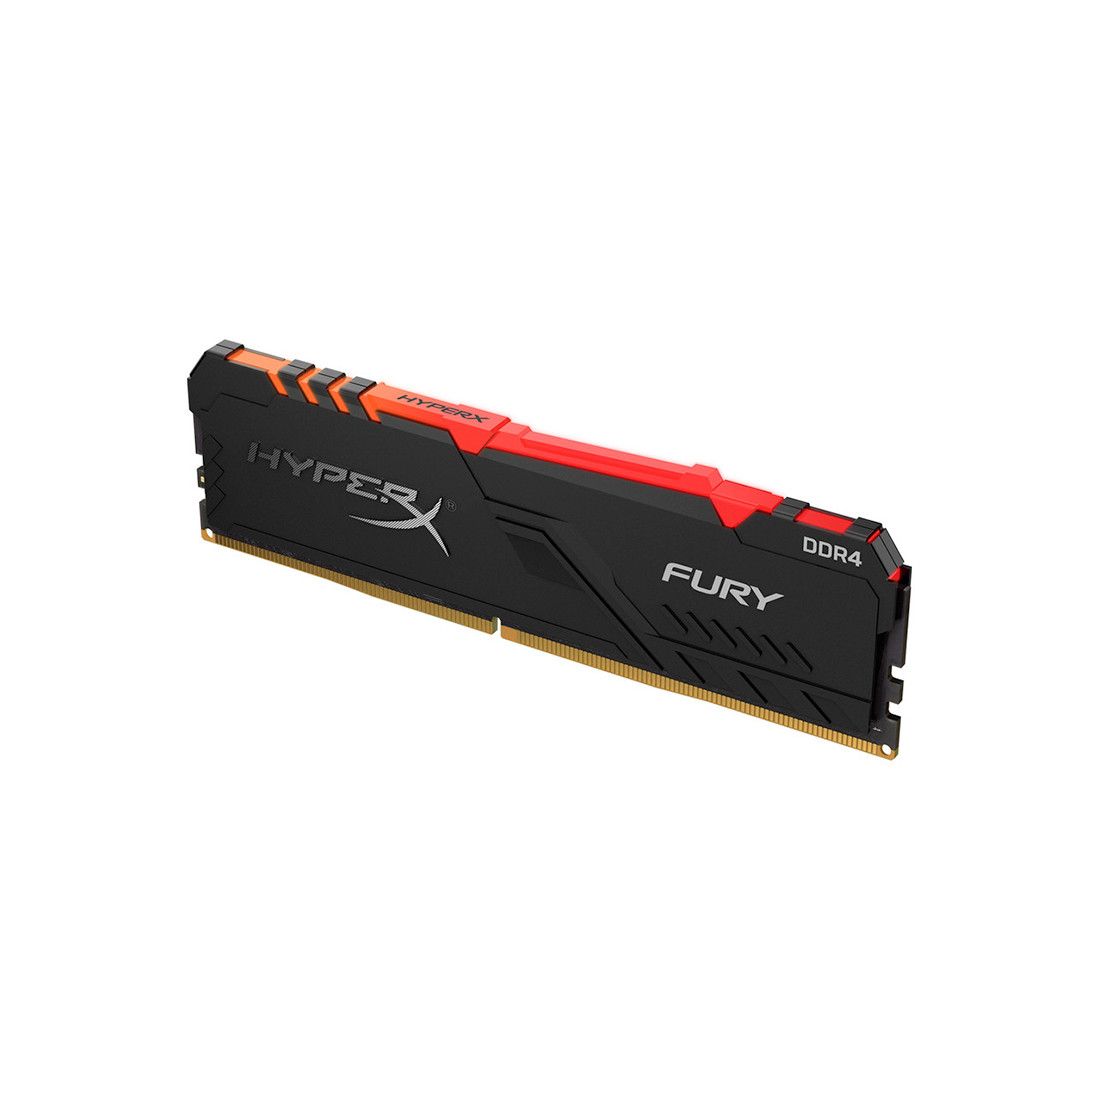 Оперативная память Kingston HyperX Fury RGB HX430C15FB3A/8 DDR4 8G 3000MHz